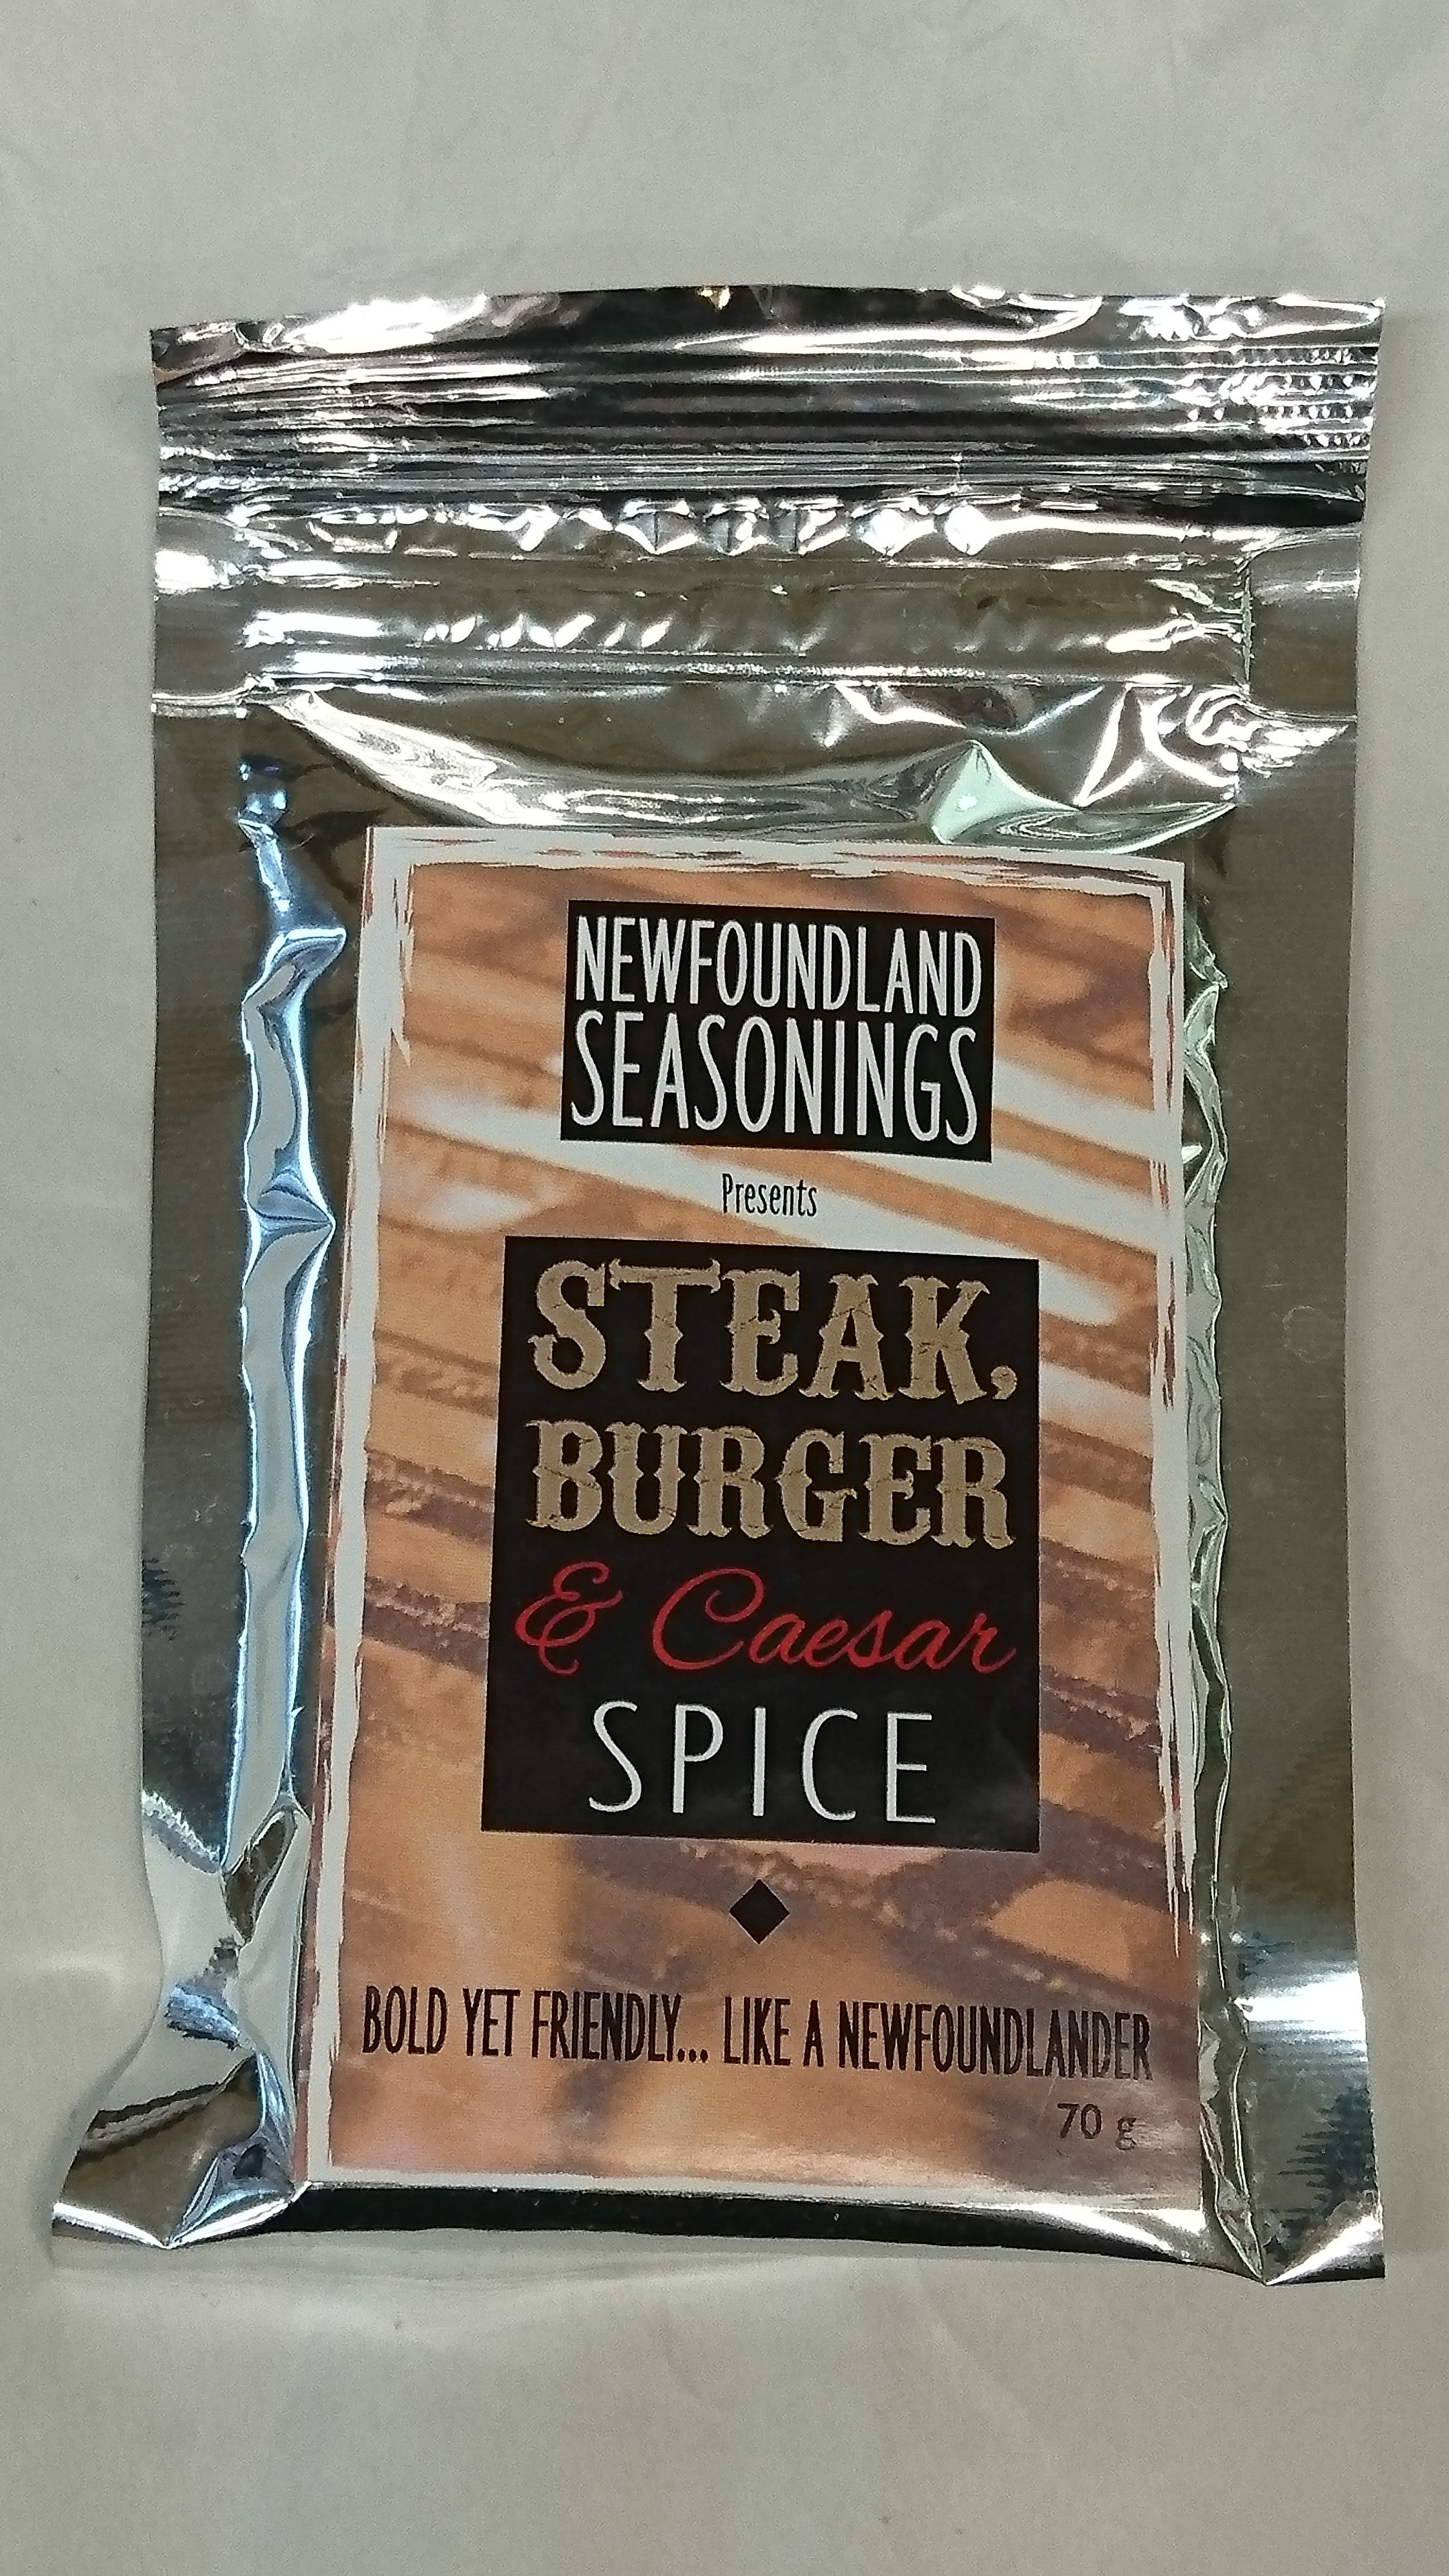 Newfoundland Seasonings